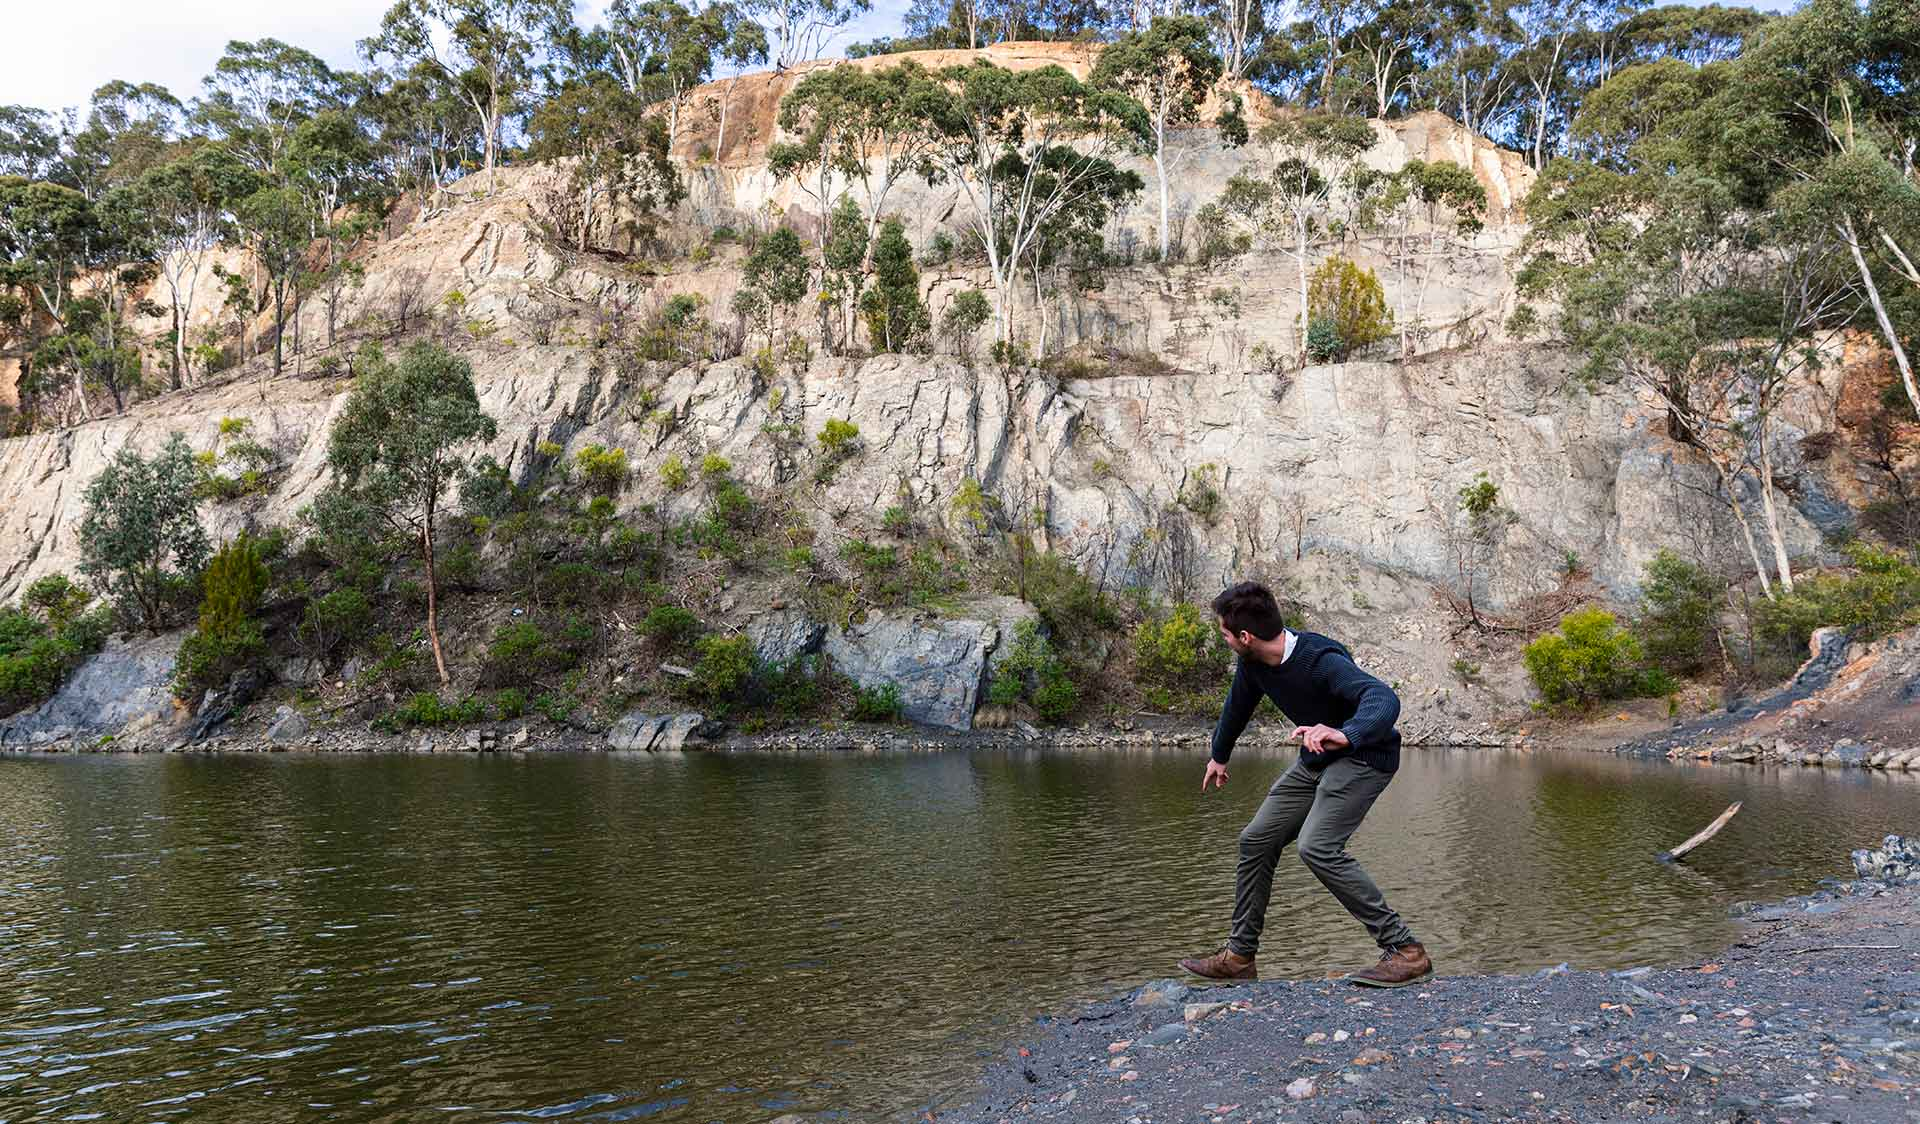 A man skims a rock along the water at Blue Lake at Plenty Gorge Park